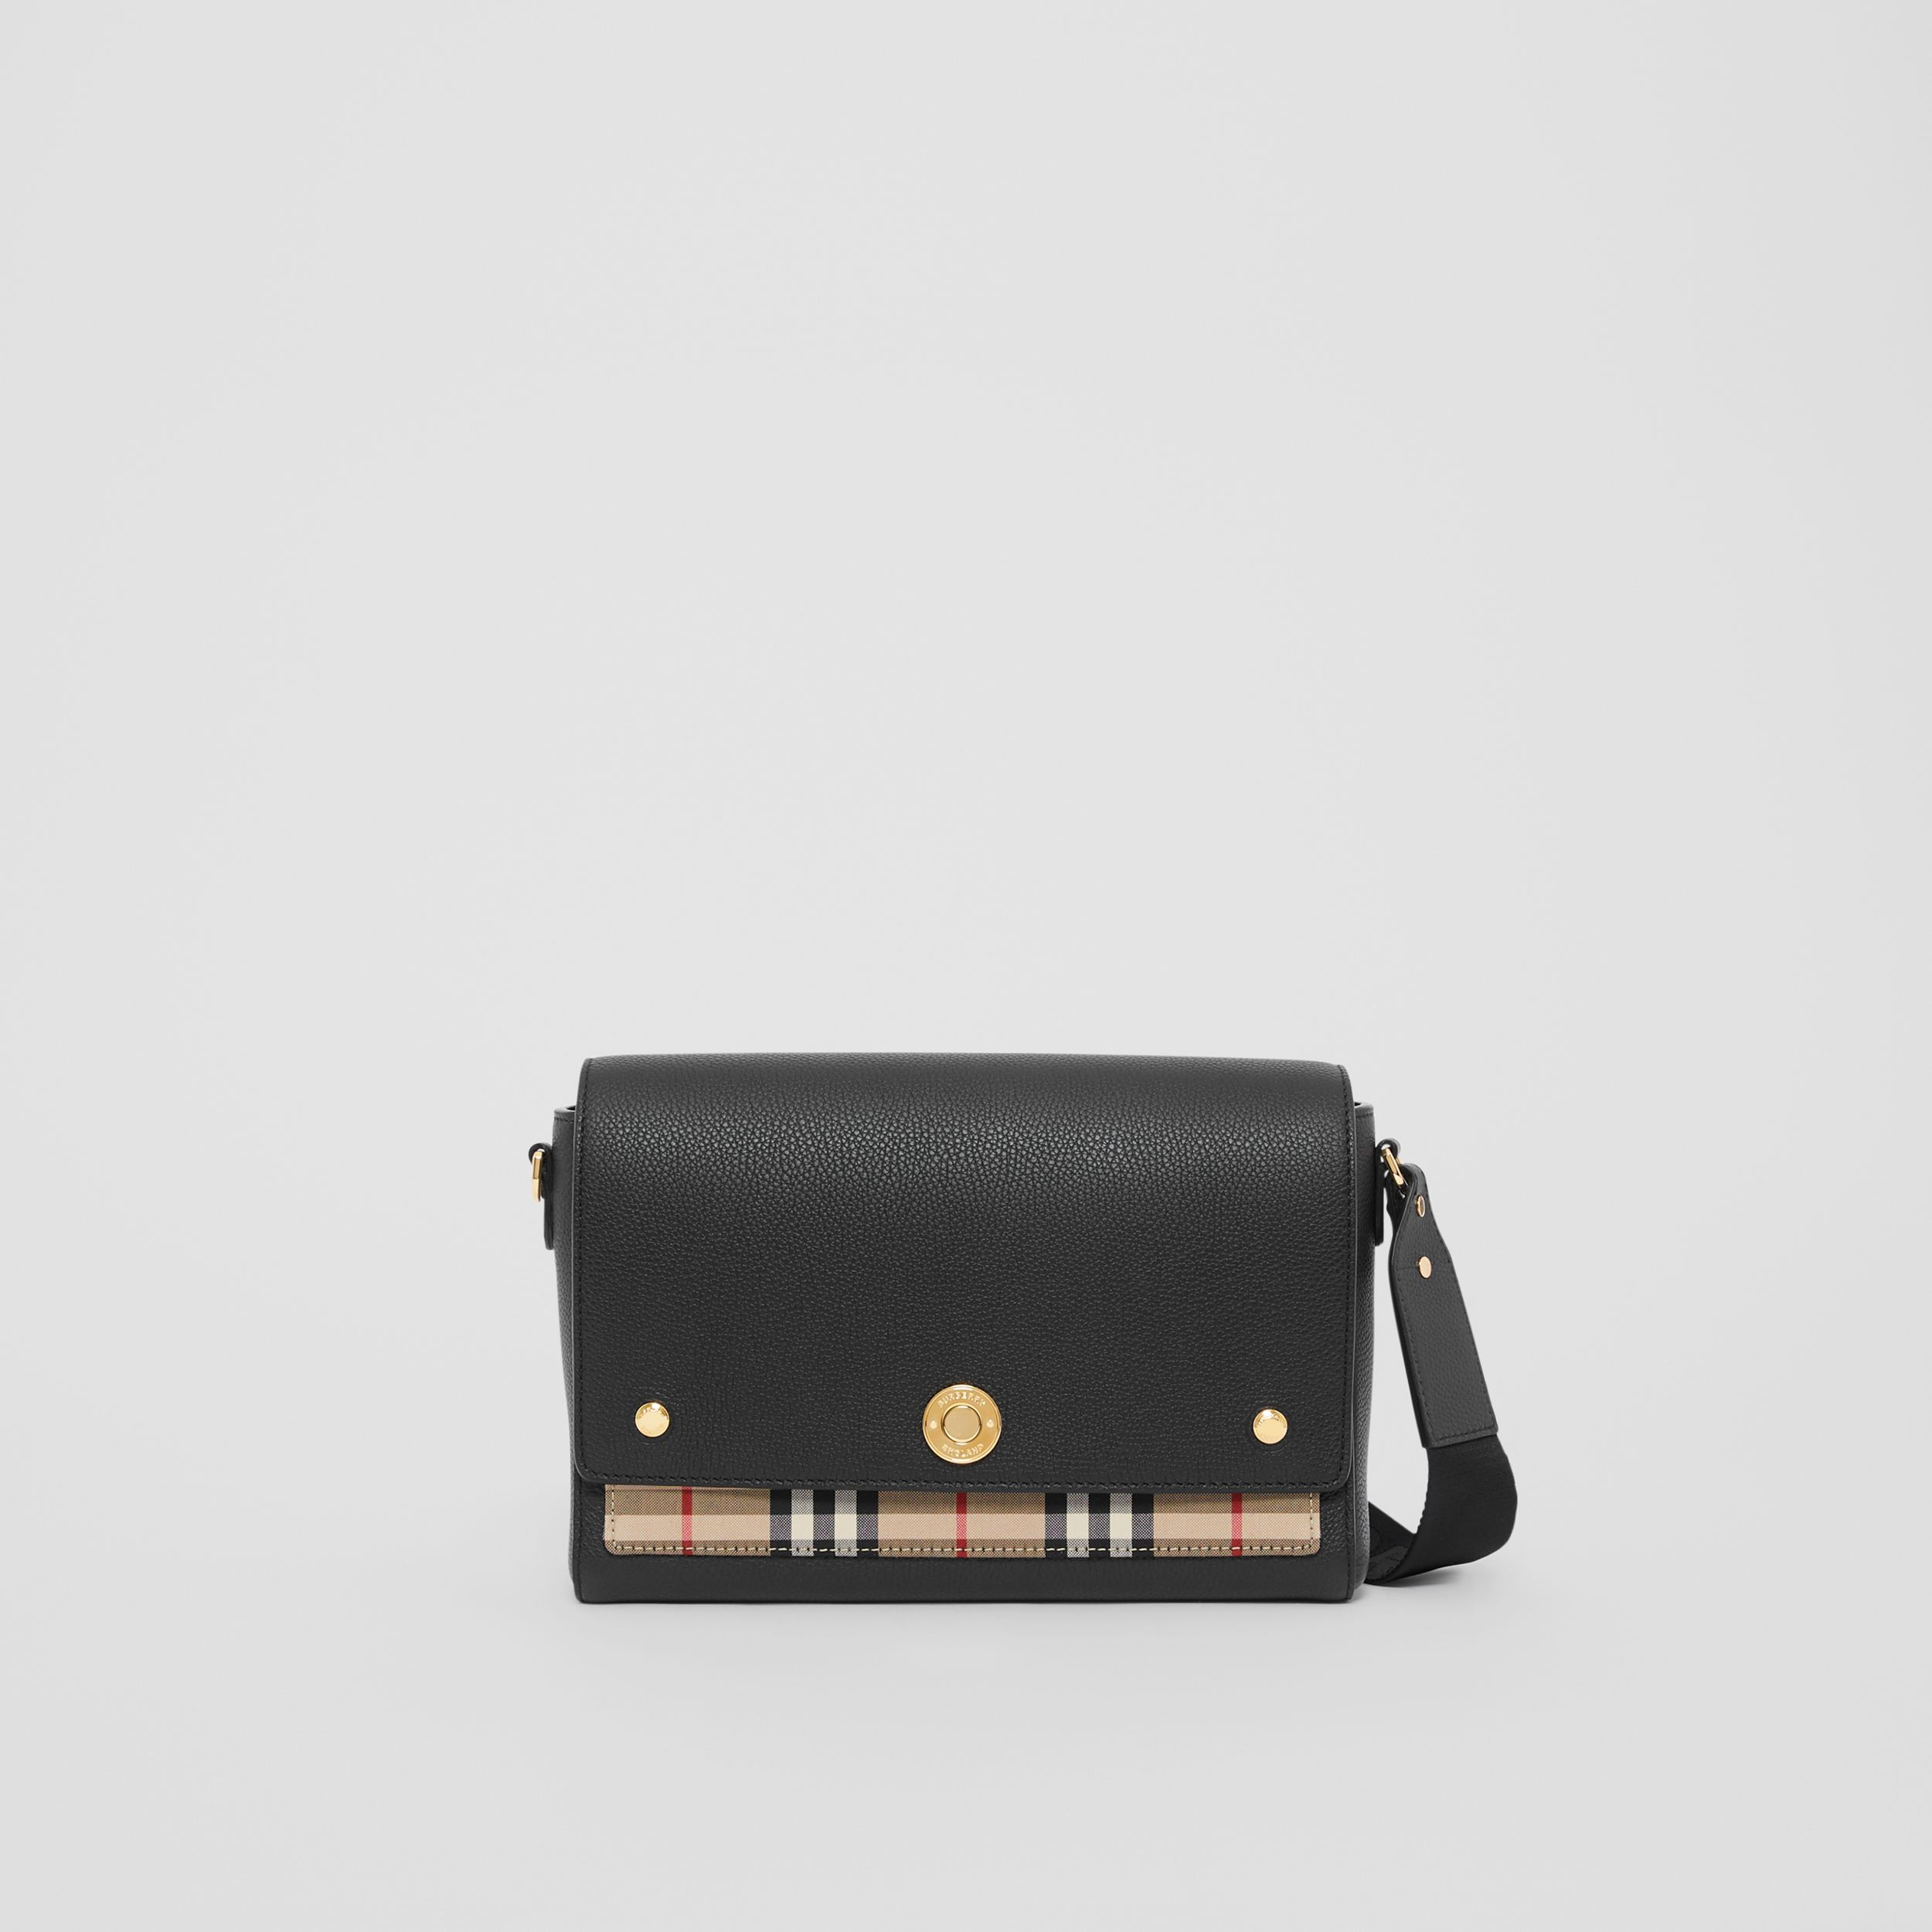 Leather and Vintage Check Note Crossbody Bag in Black - Women | Burberry - 1